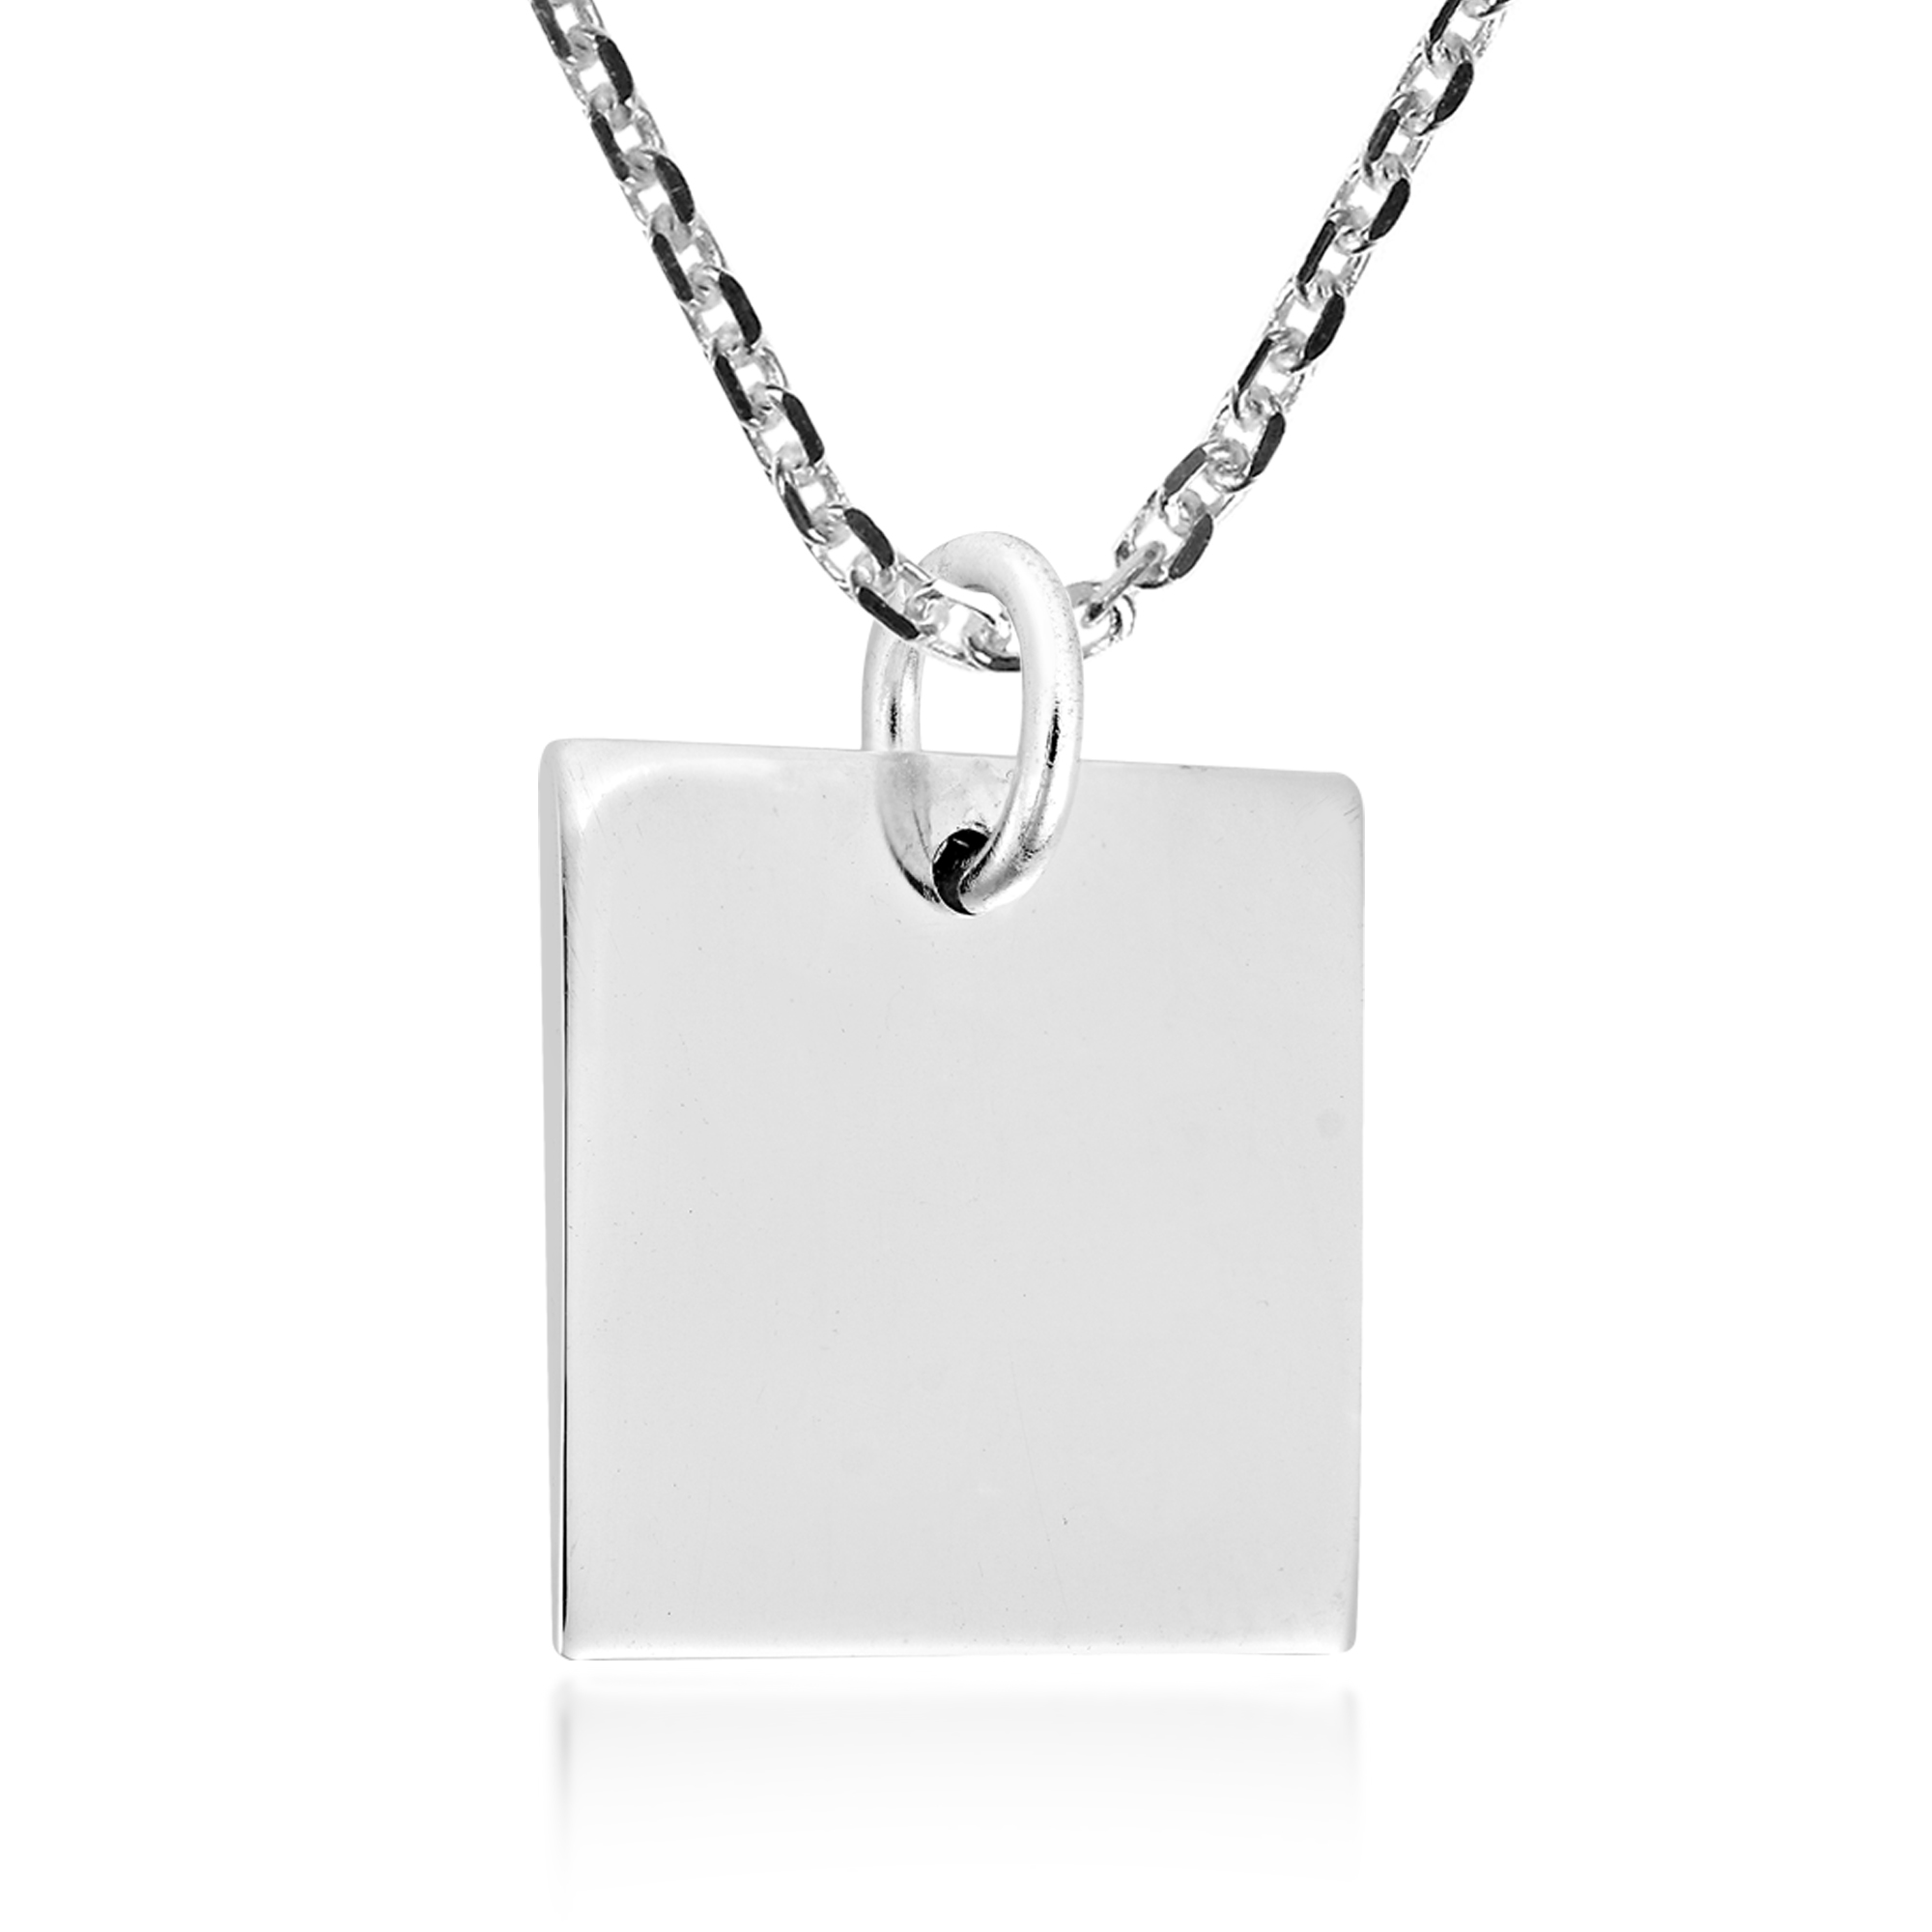 silver gb london hope sterling links of en hires necklace pendant